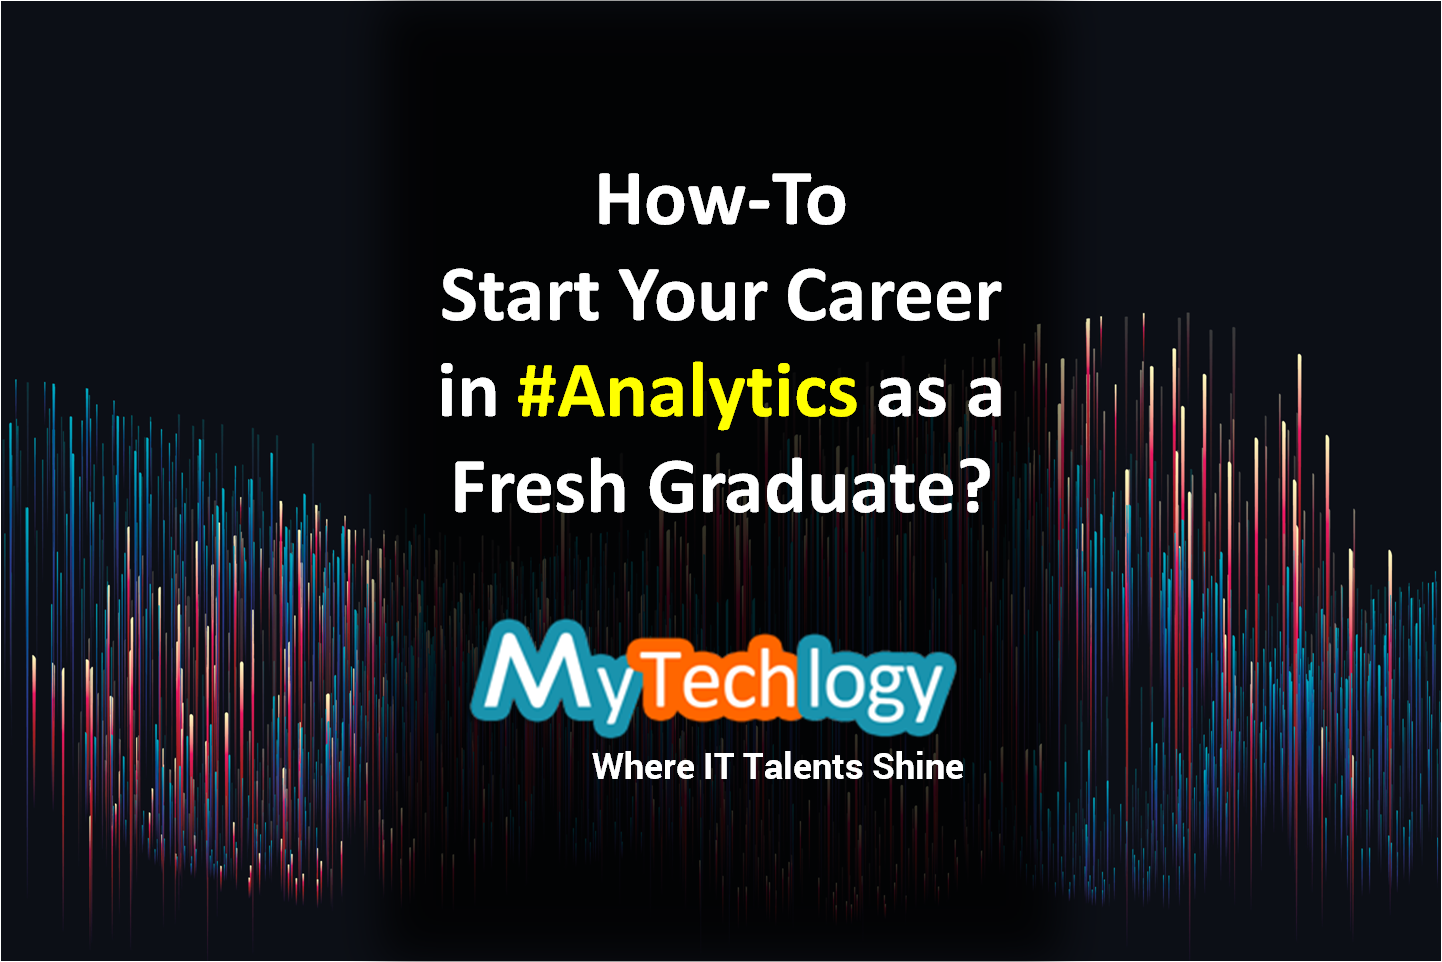 How-To start your career in Analytics as a Fresh Graduate? - Image 1